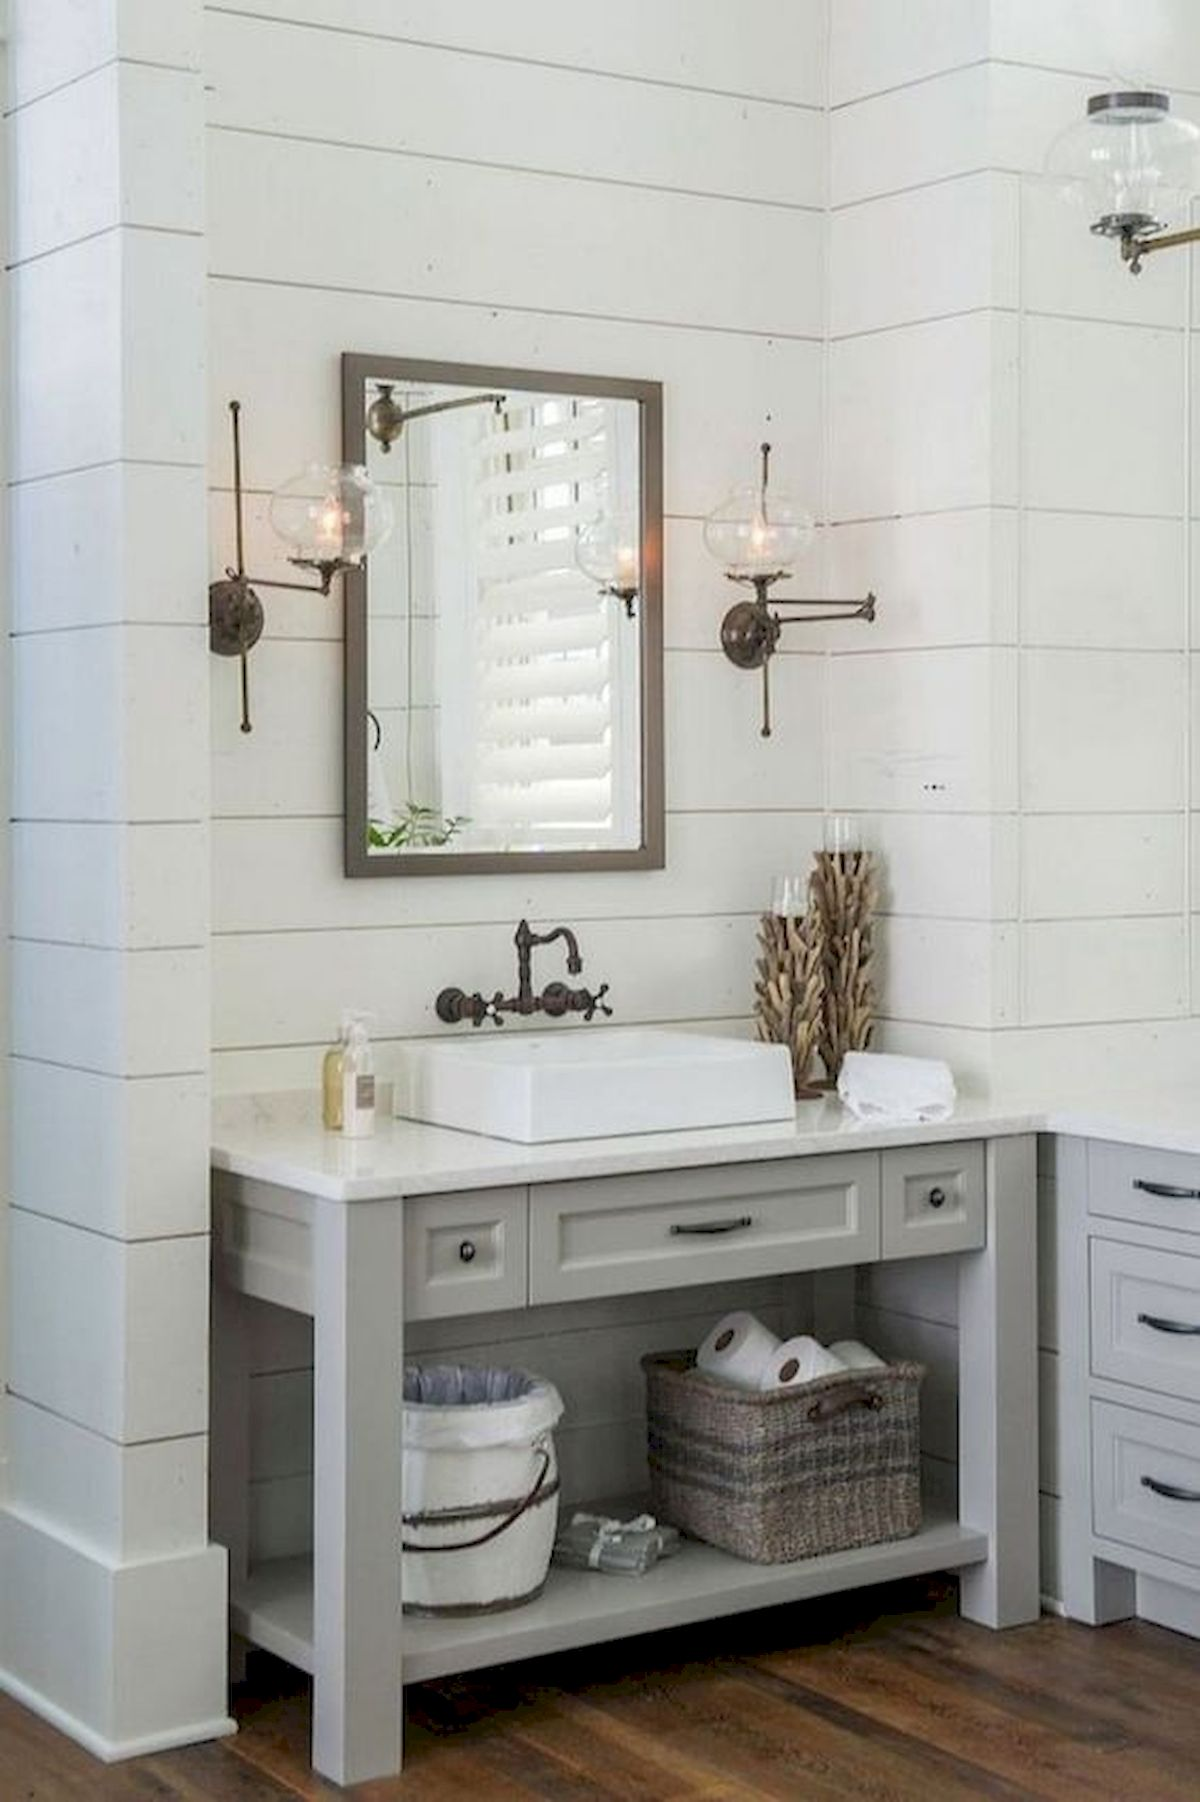 50 Fantastic DIY Modern Farmhouse Bathroom Remodel Ideas (44)